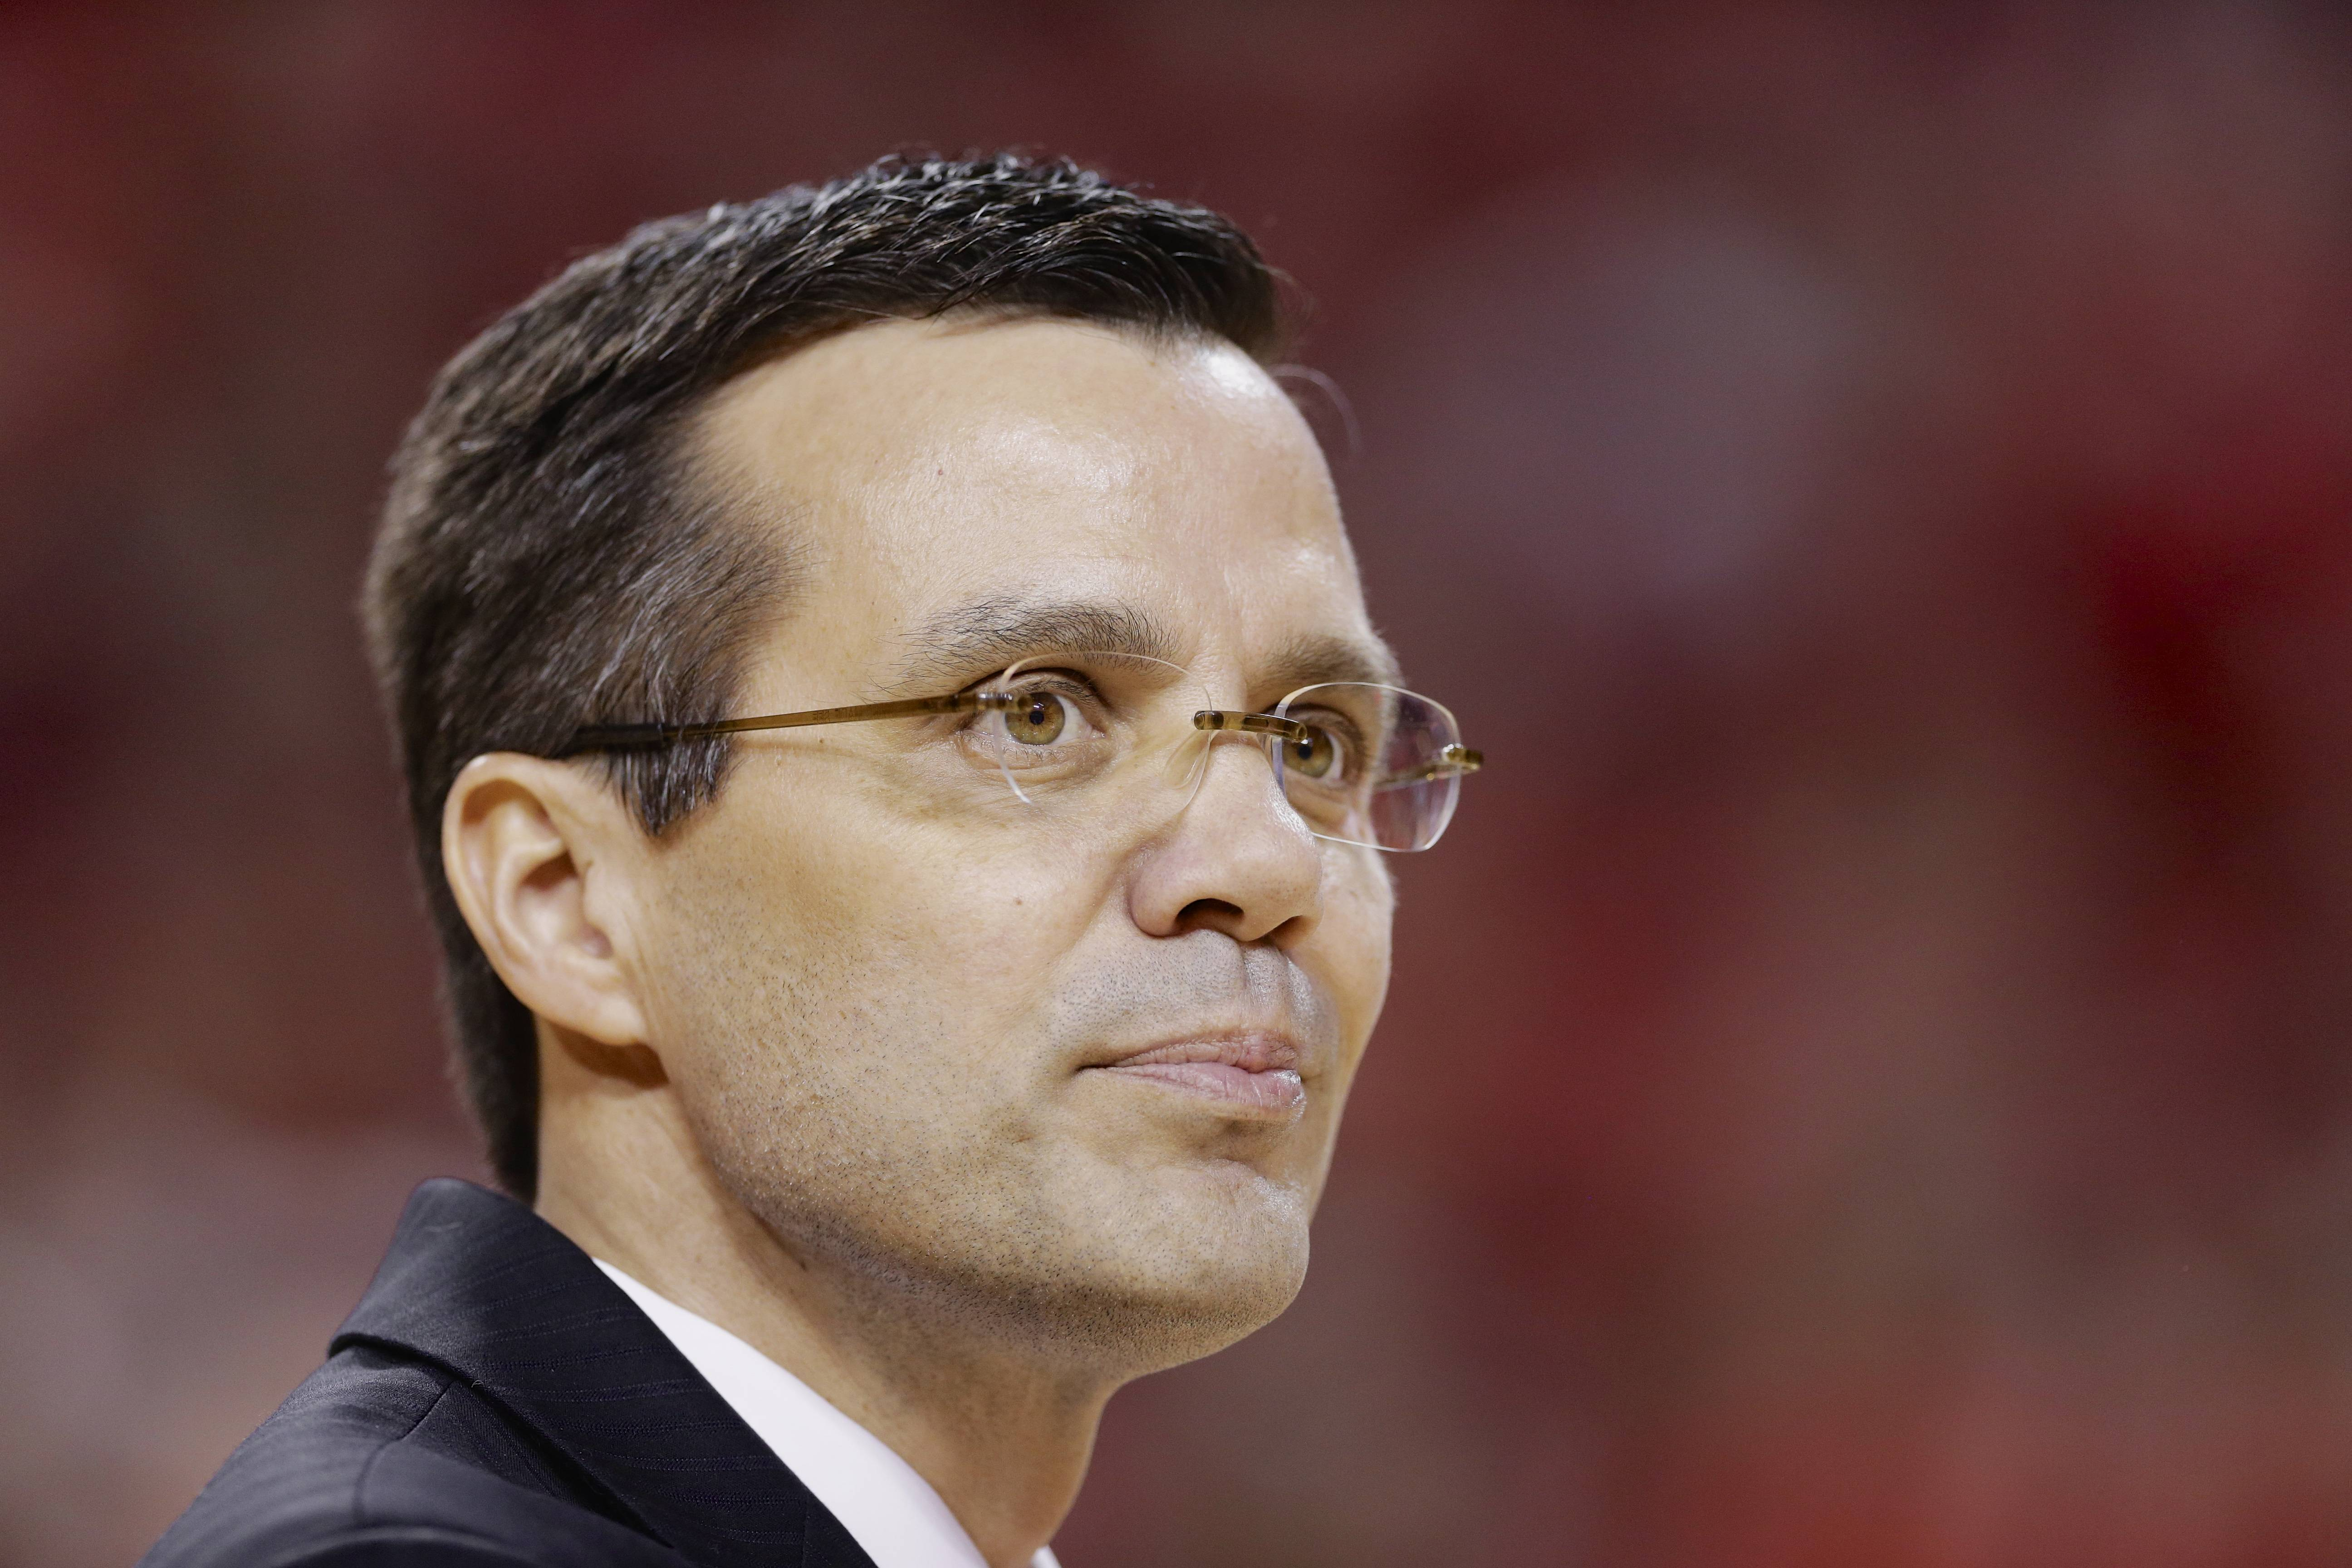 Nebraska coach Tim Miles who tweets at halftime and high-fives students as he enters the arena has helped turn the Cornhuskers around and led the team to a victory against Wisconsin on Sunday in Lincoln, Neb. Nebraska hired Miles because of his reputation for turning around moribund basketball programs. I